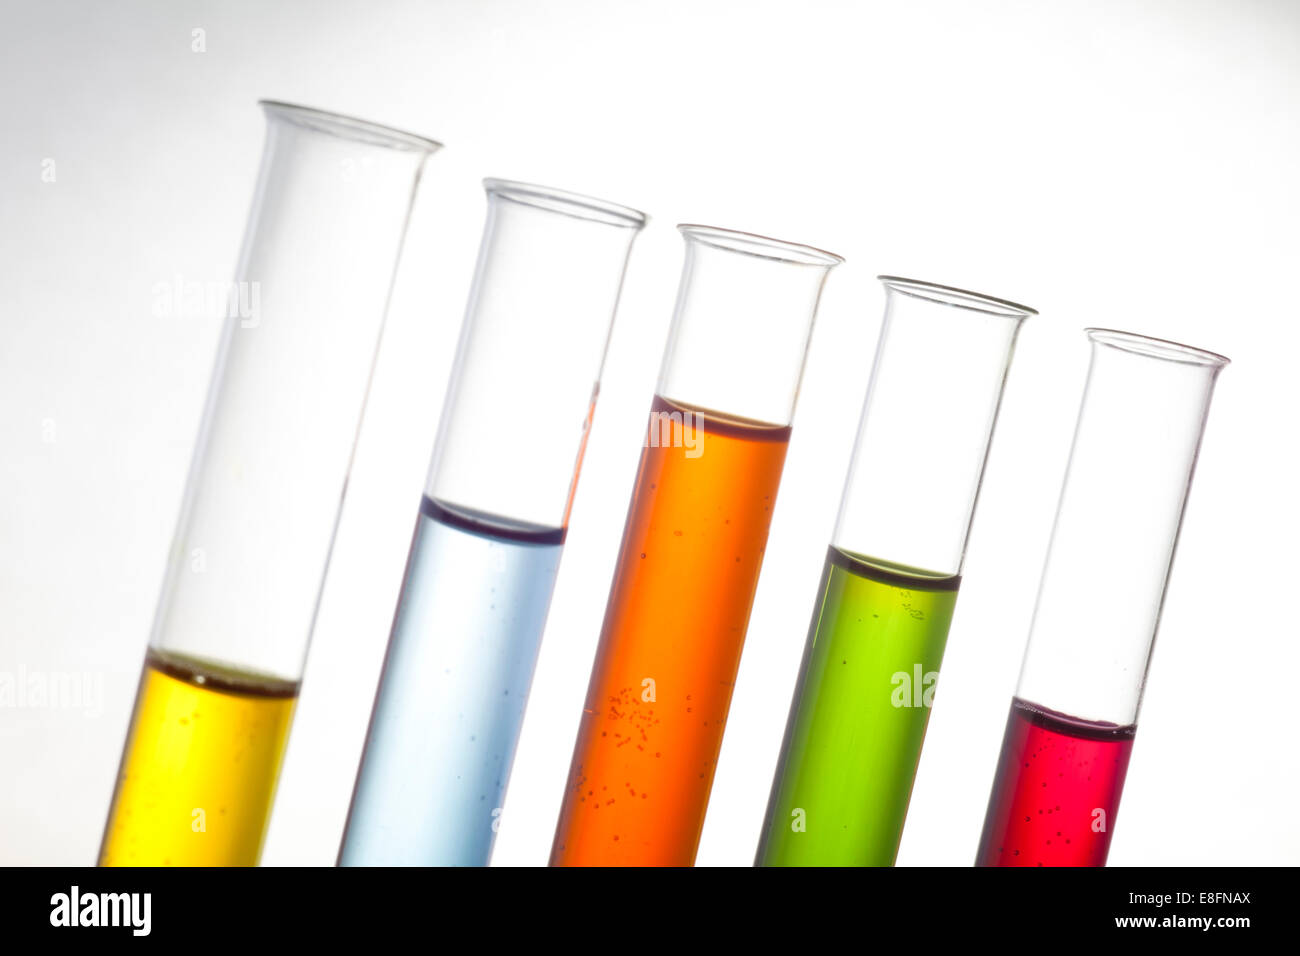 Row of test tubes with multi-colored liquid - Stock Image